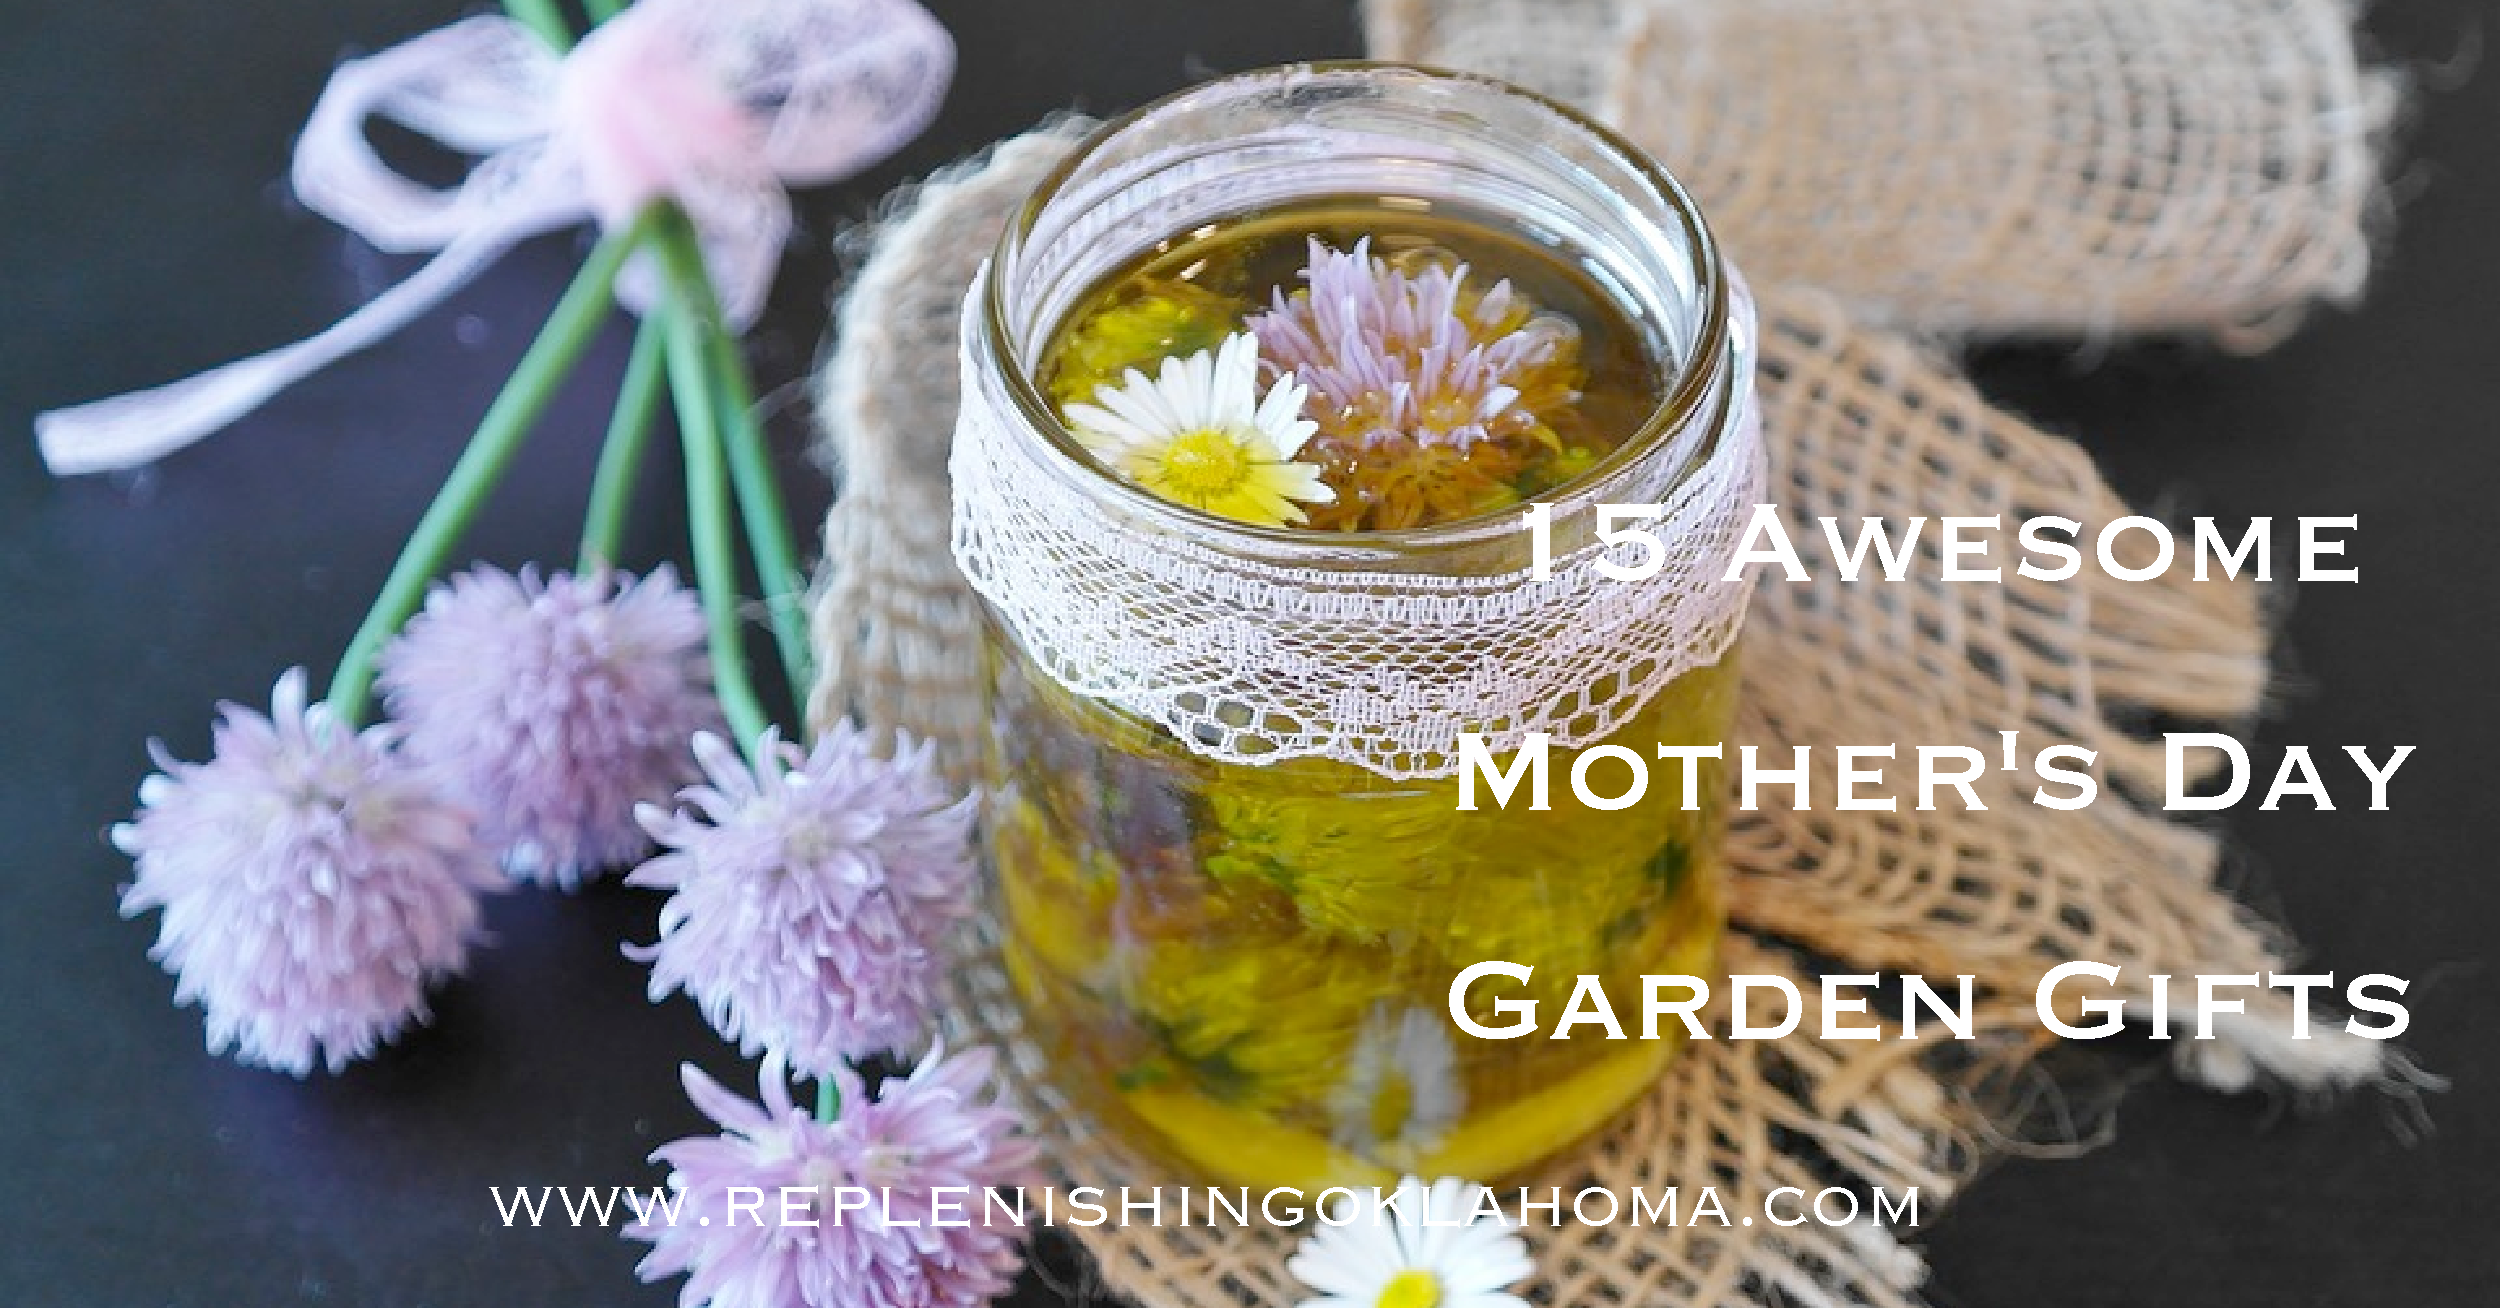 15 Awesome Mother S Day Garden Gifts Replenishing Oklahoma